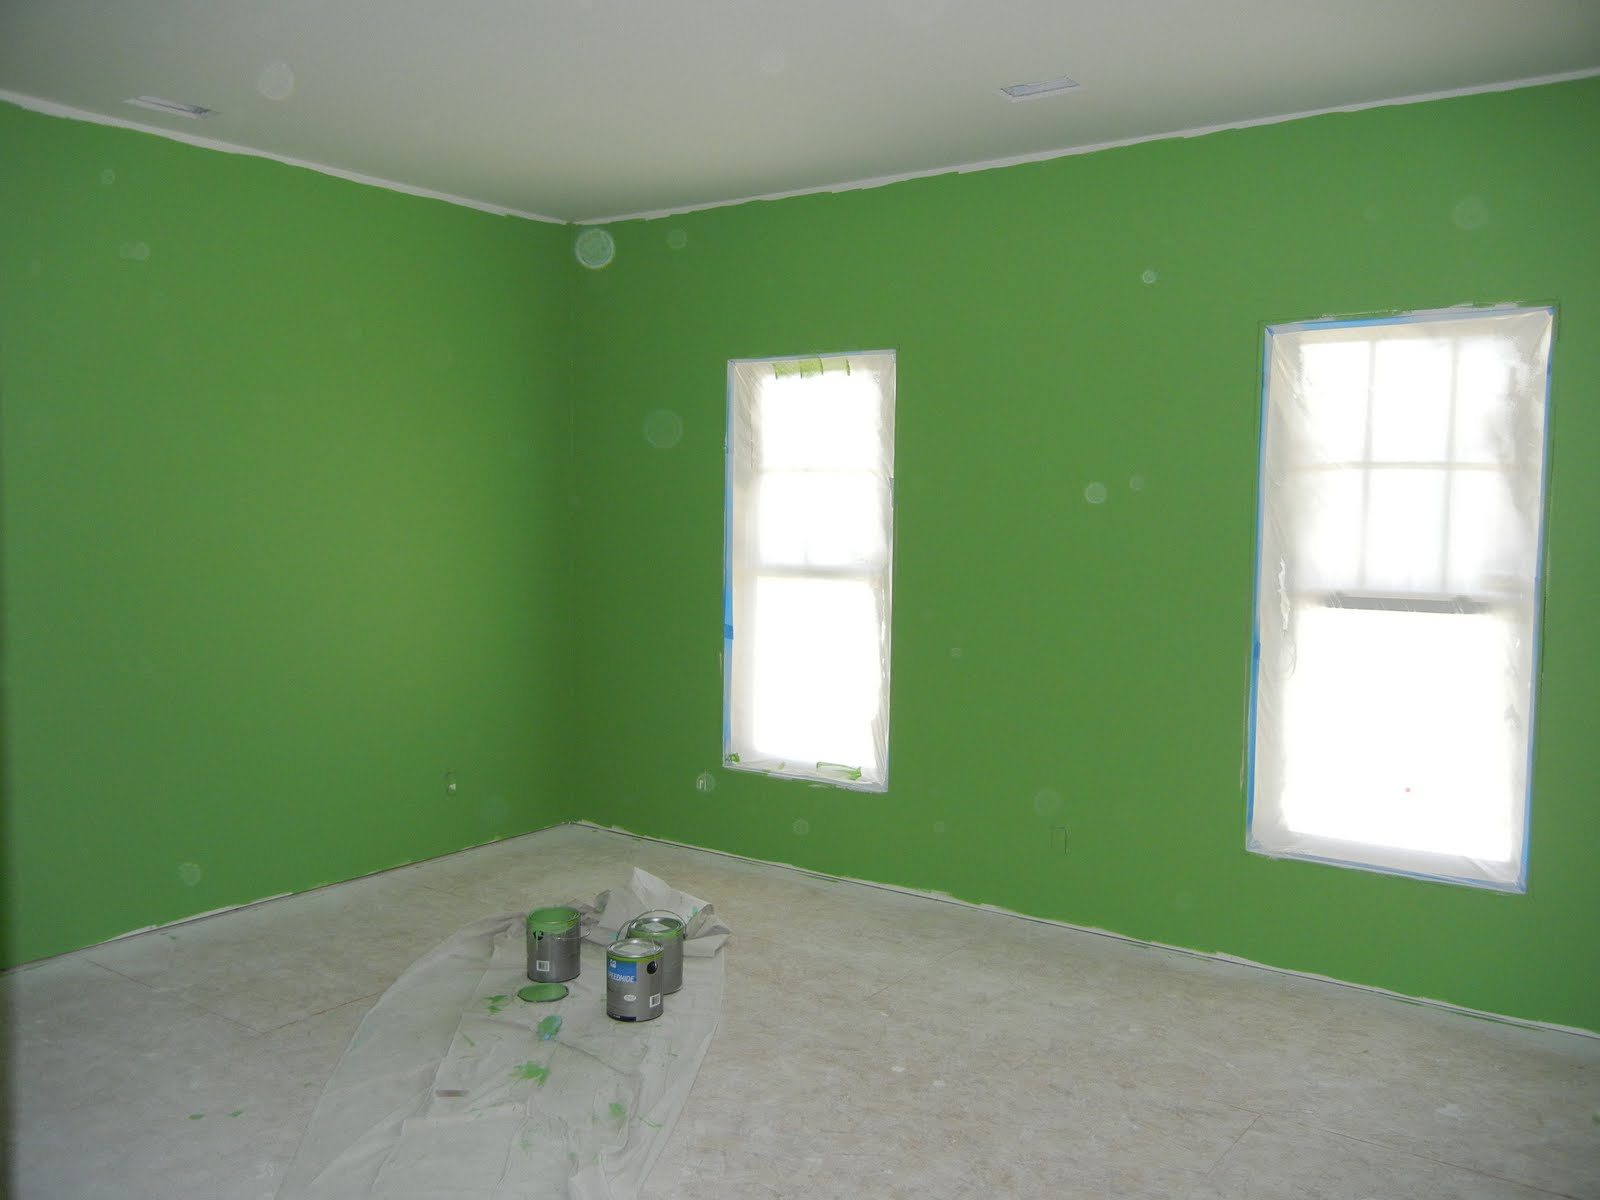 Colored Rooms Awesome Of Room Colors Photos